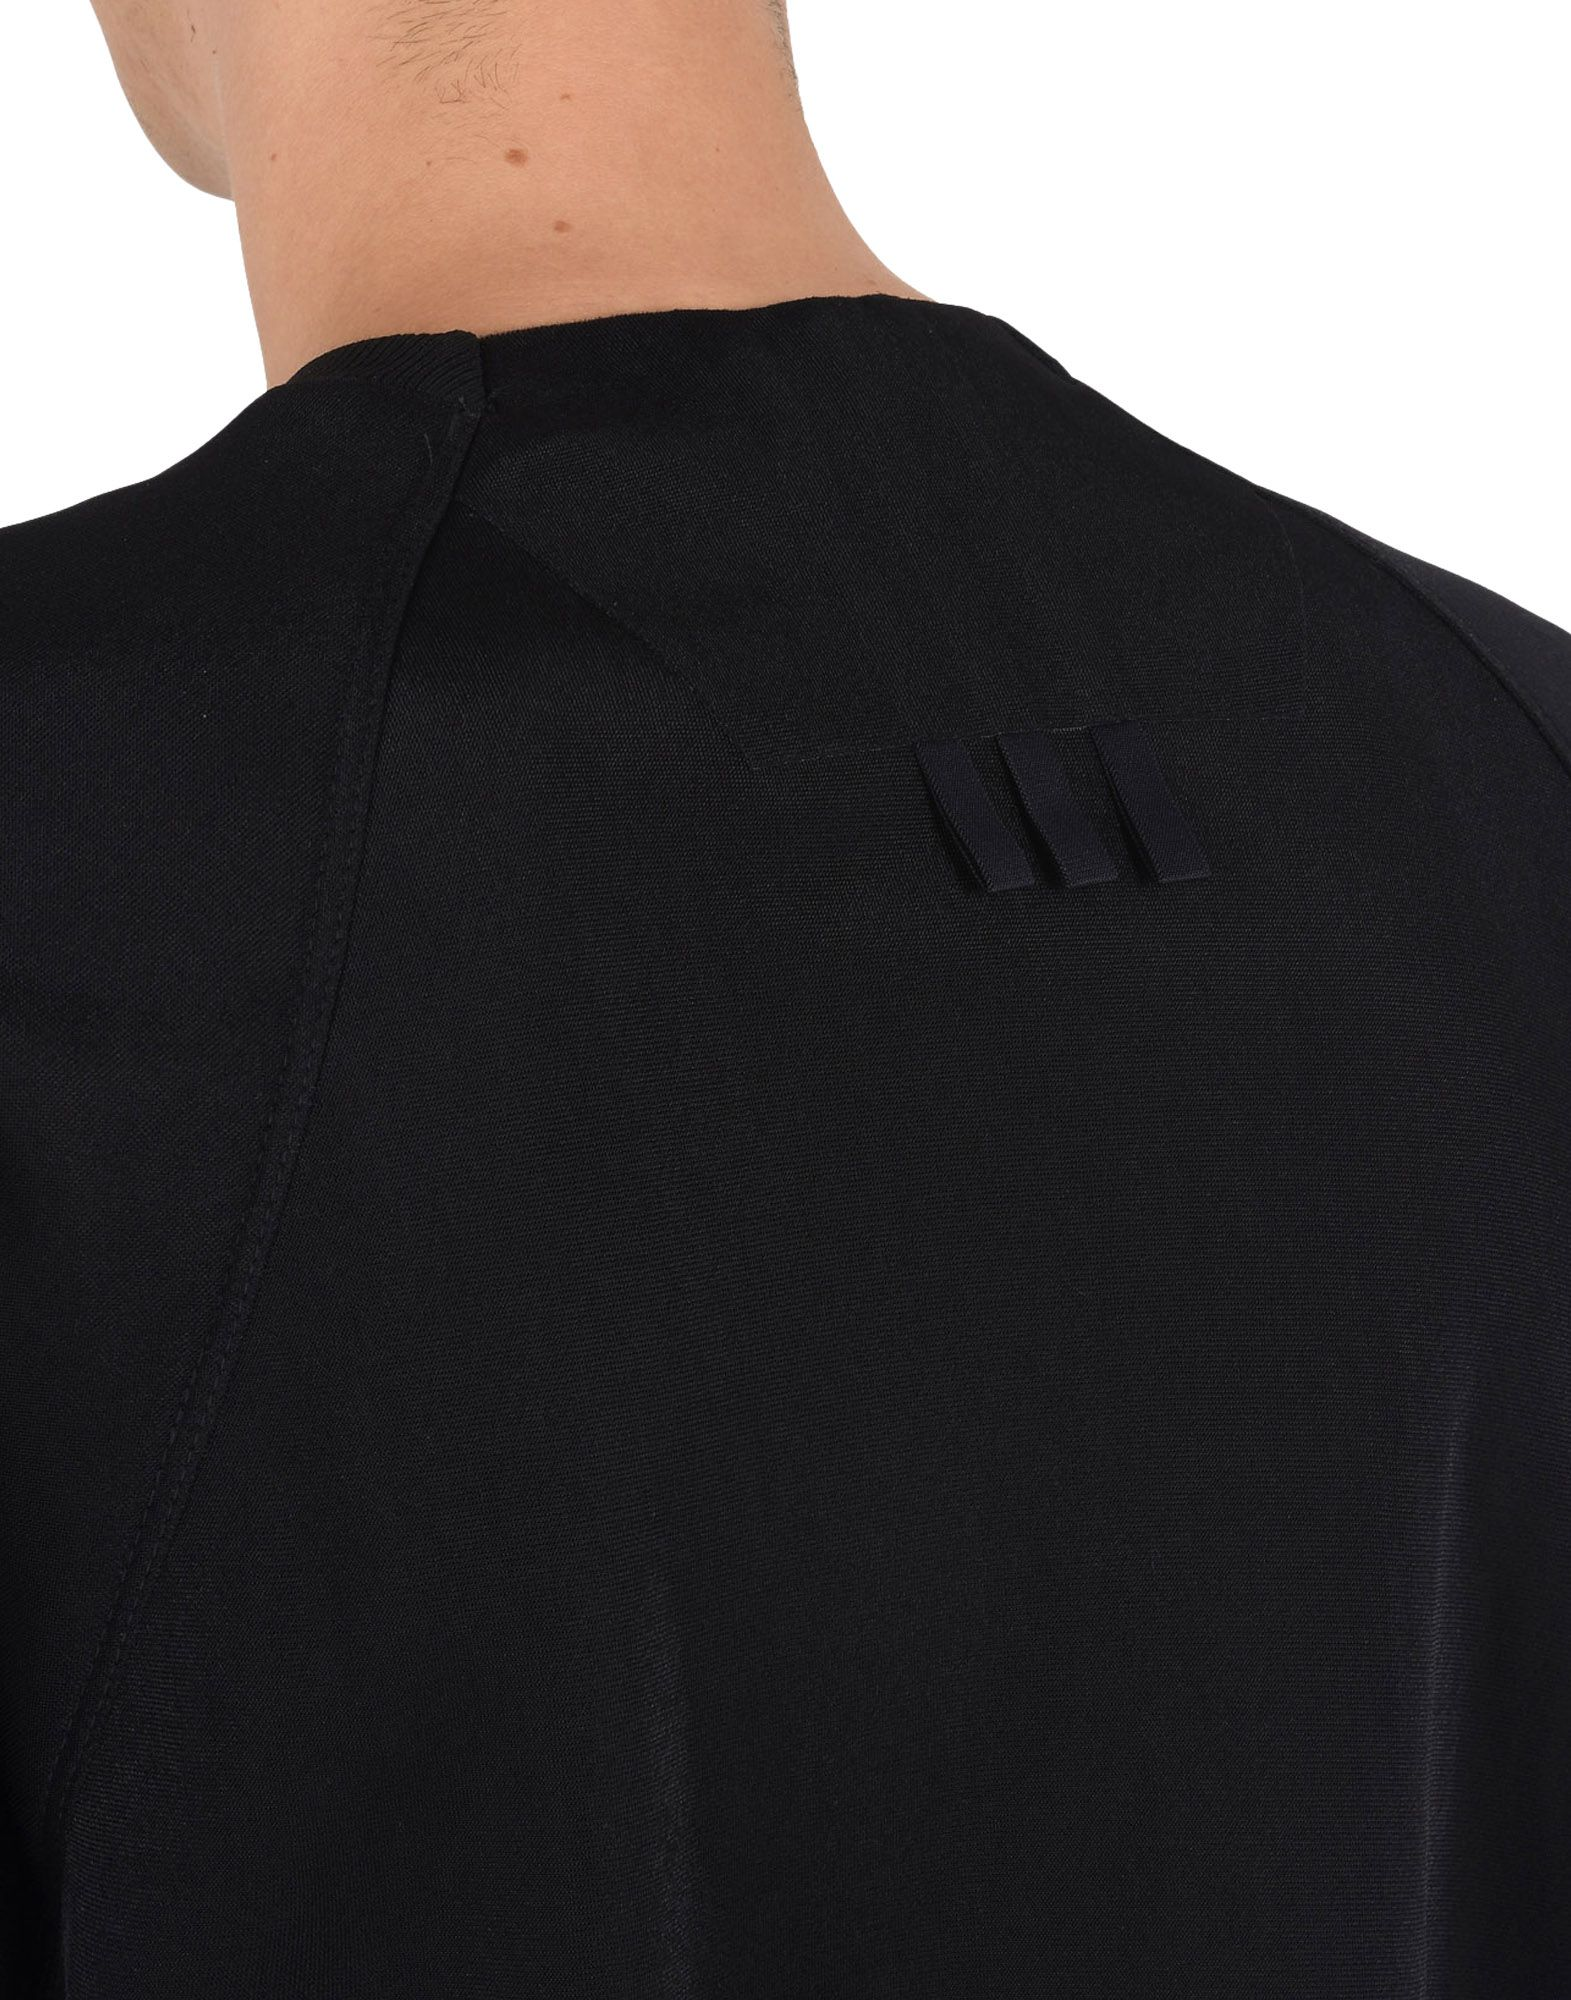 Y-3 Y-3 SPACER MESH SWEATER Sweatshirt Man a